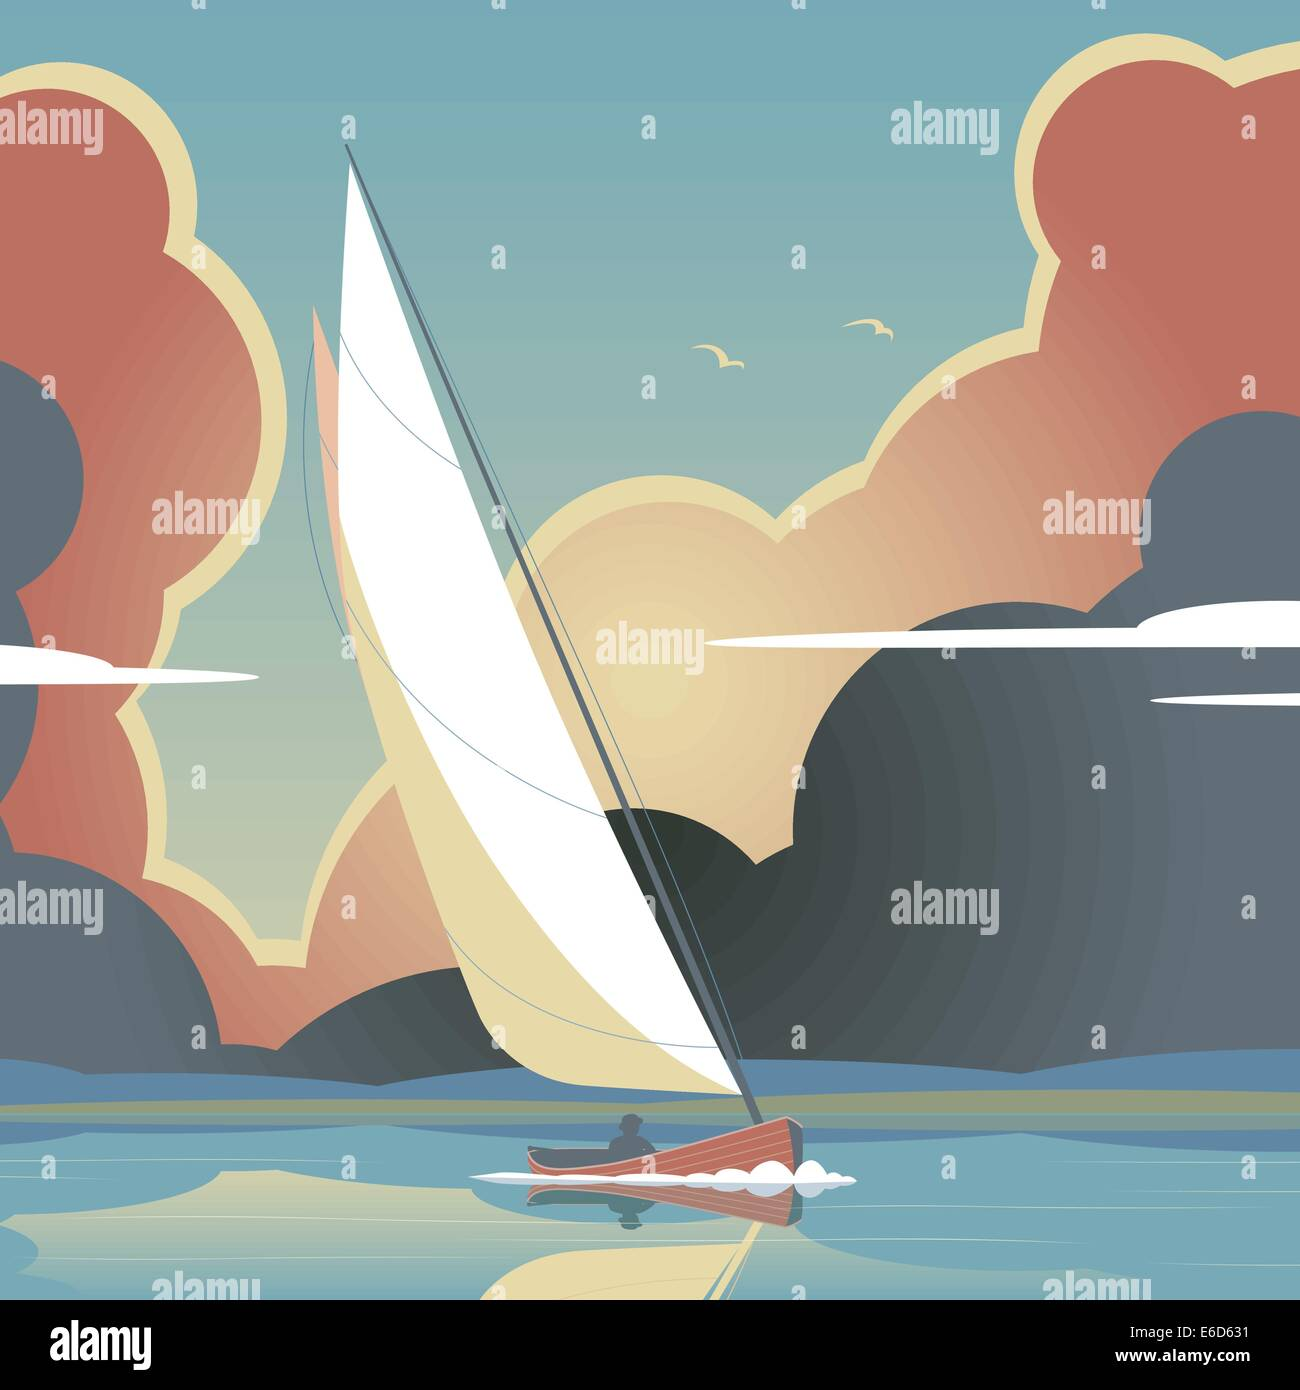 Illustration vectorielle modifiable d'un homme d'un yacht à voile sur l'eau calme Photo Stock